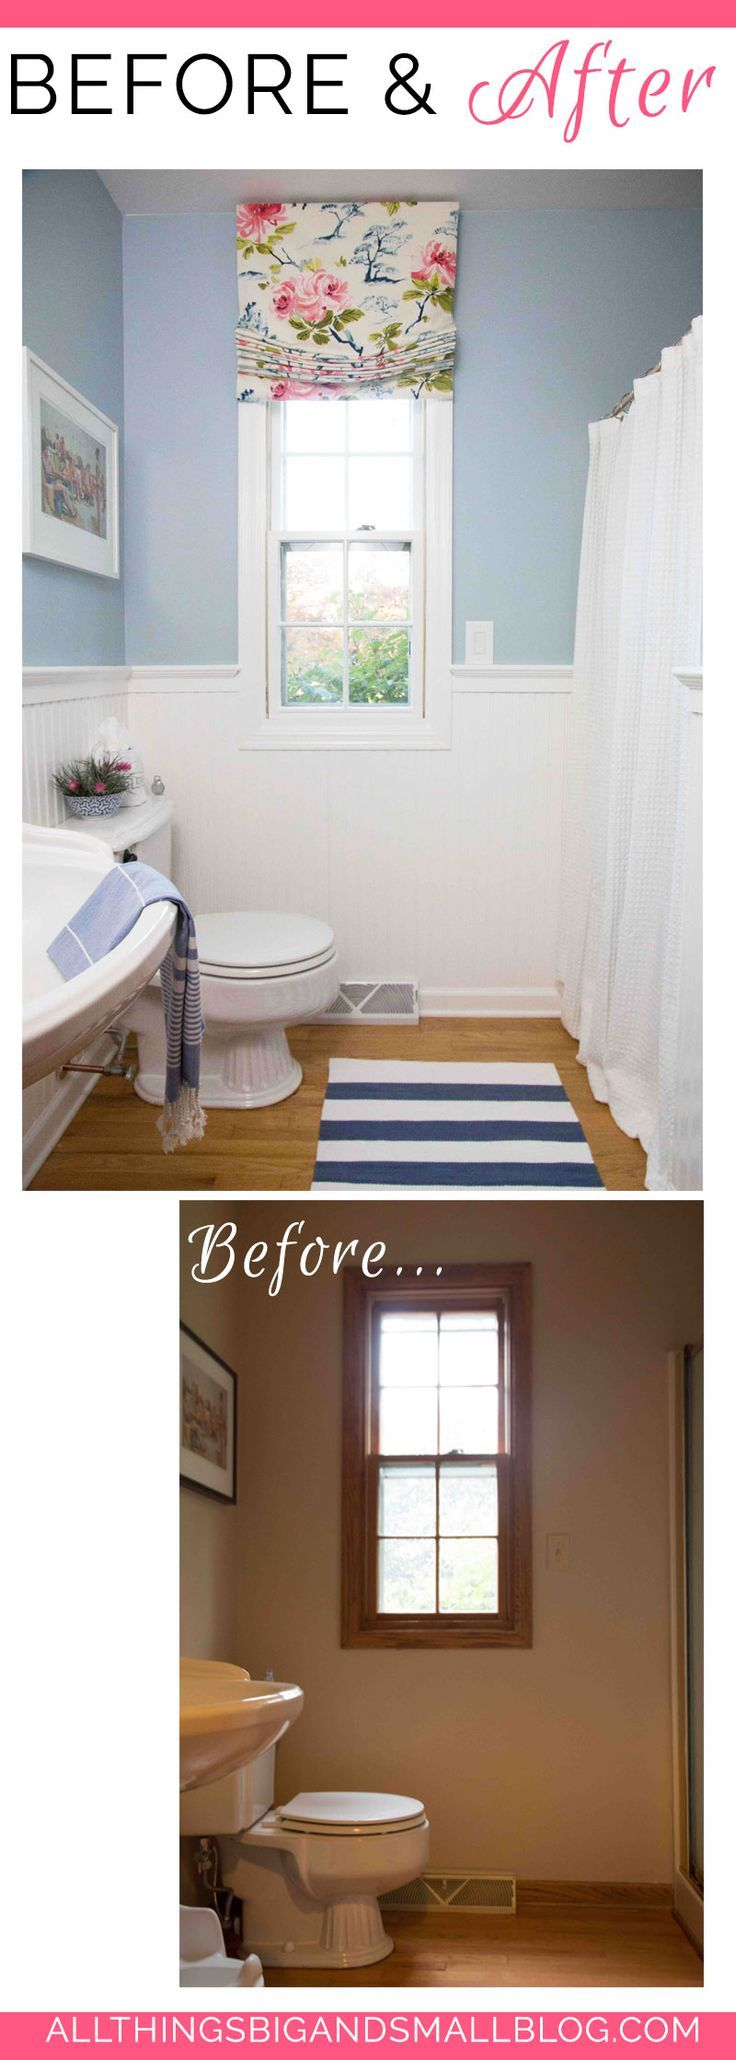 Budget Friendly Diy Home Decorating Ideas Tutorials 2017: 1000+ Ideas About Bathroom Before After On Pinterest